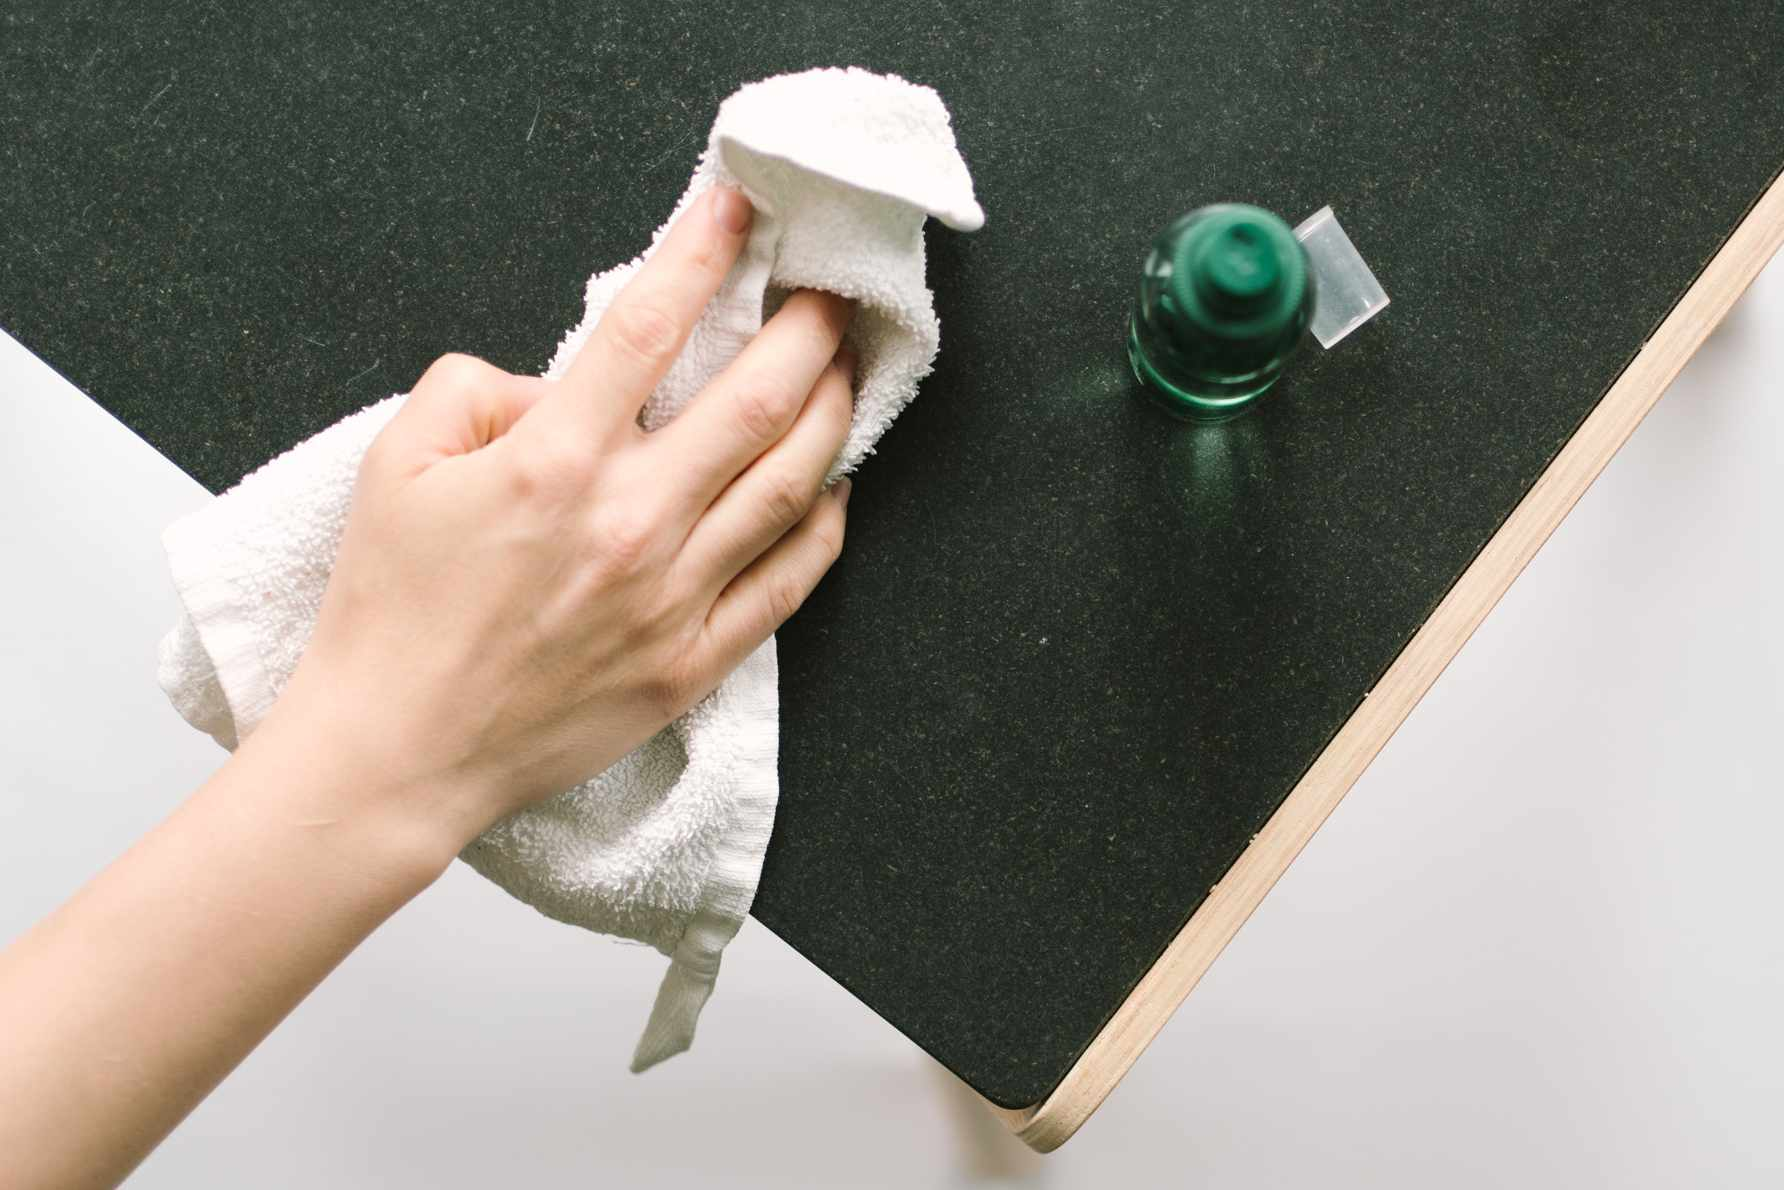 wiping down a countertop